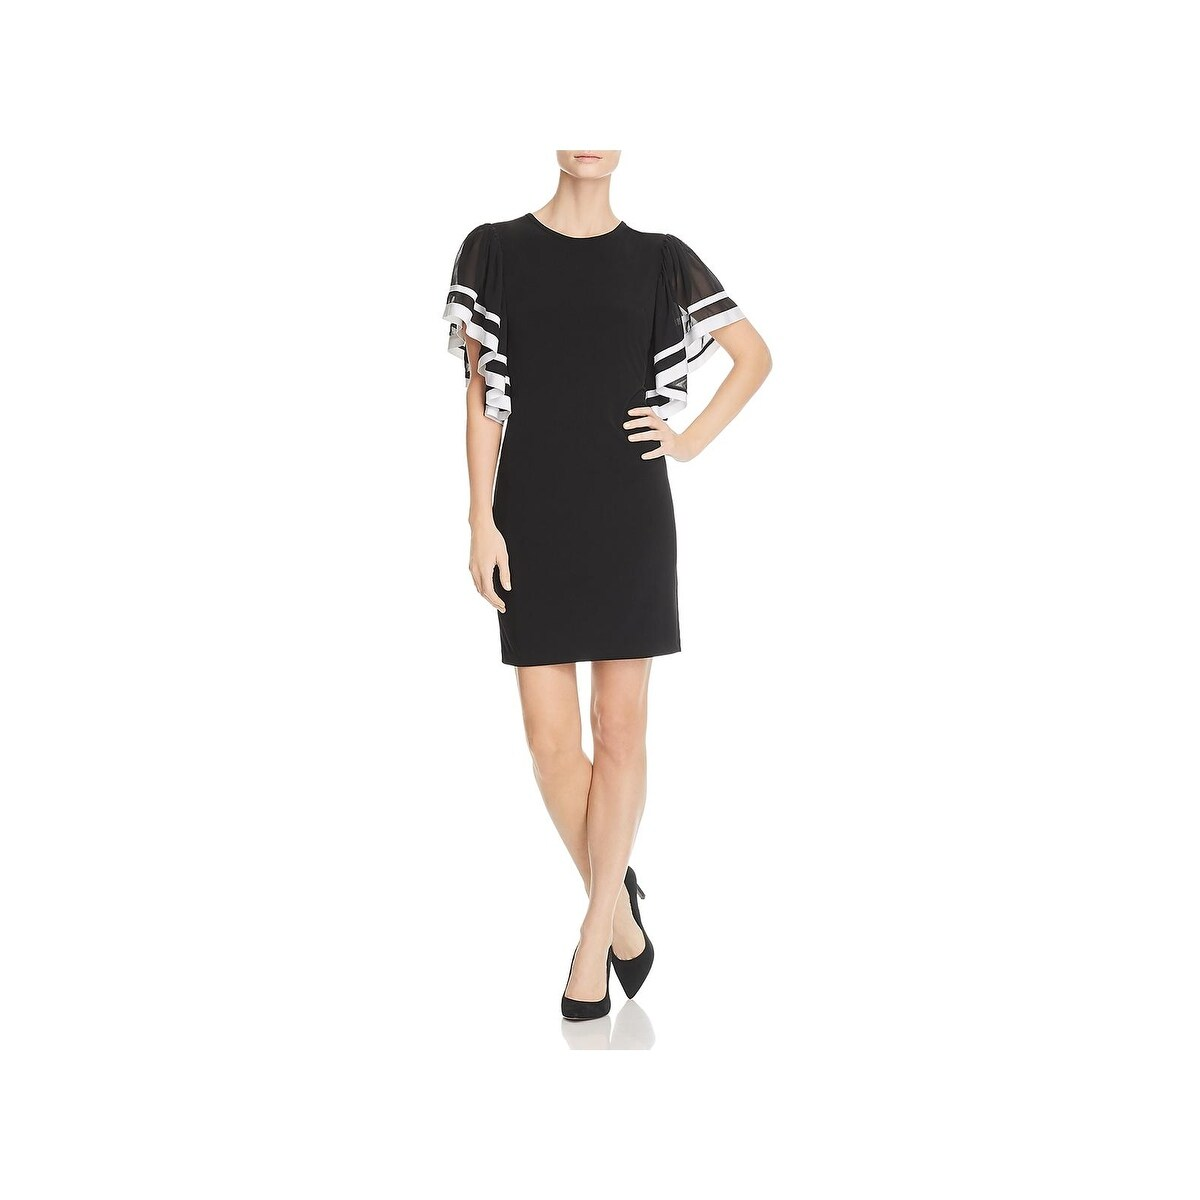 ef26cad8 MICHAEL Michael Kors Dresses | Find Great Women's Clothing Deals Shopping  at Overstock